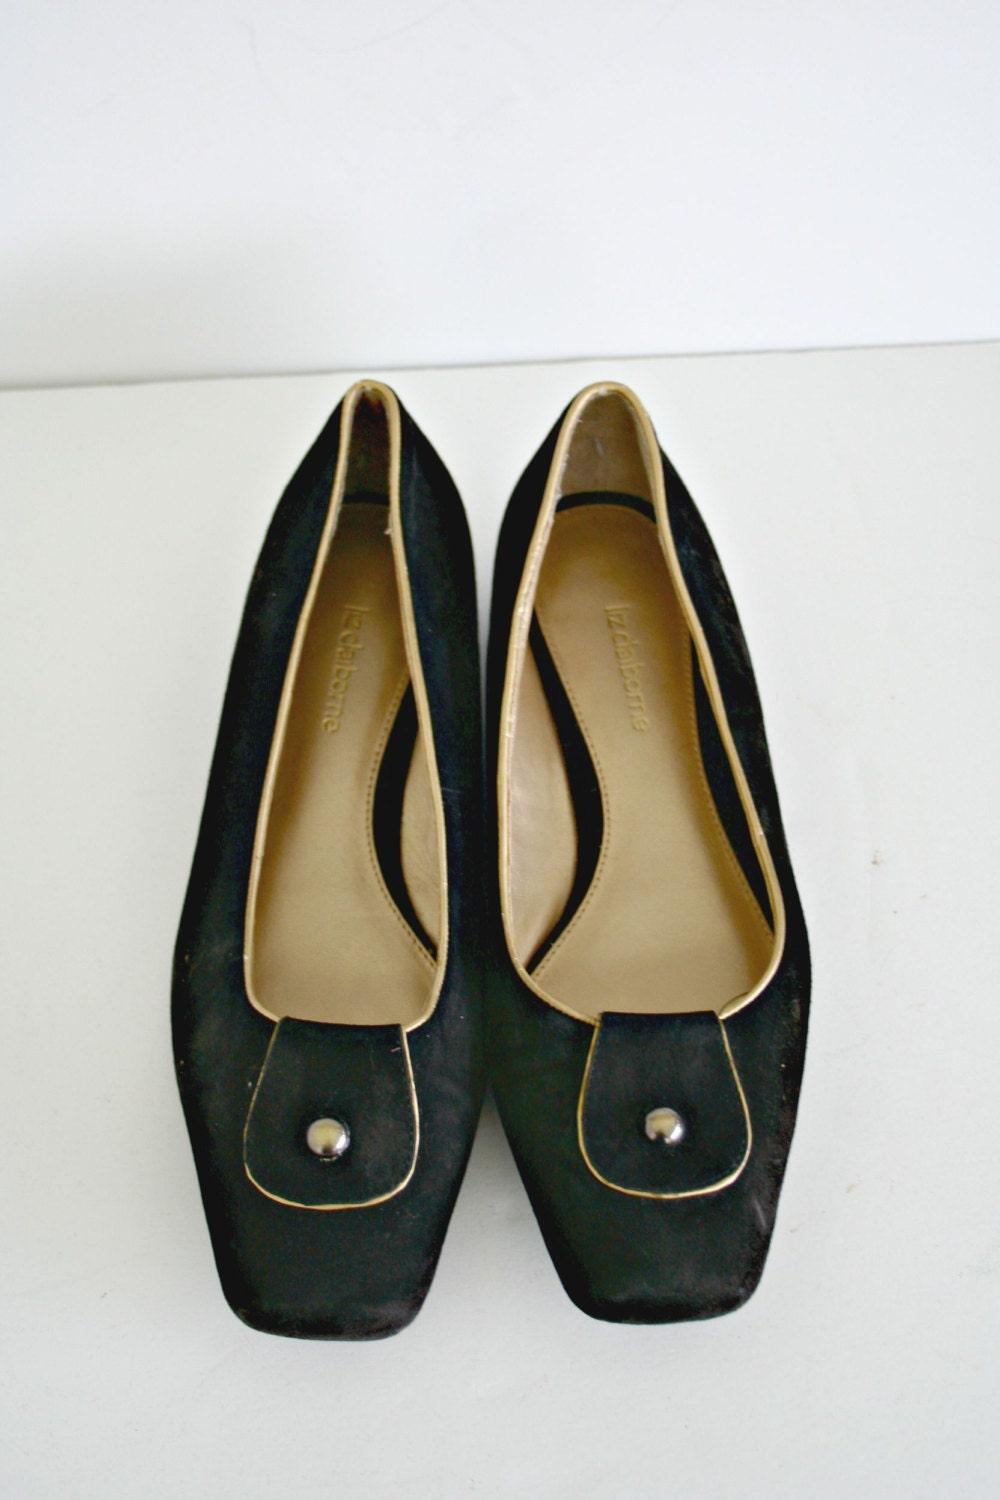 liz claiborne black suede leather shoes gold by